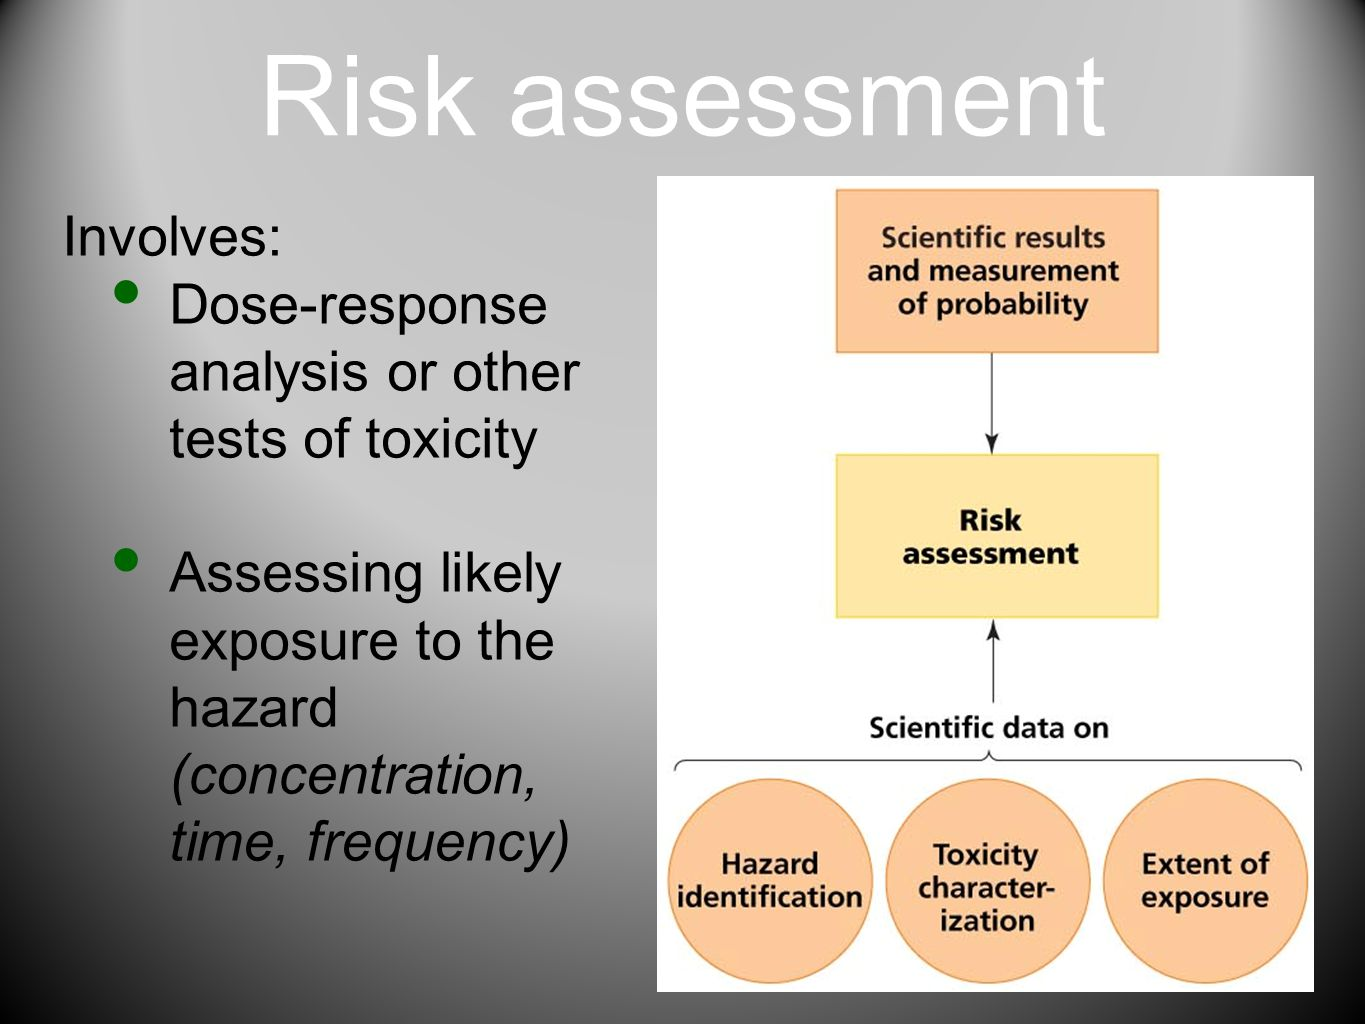 Risk assessment Involves: Dose-response analysis or other tests of toxicity Assessing likely exposure to the hazard (concentration, time, frequency)